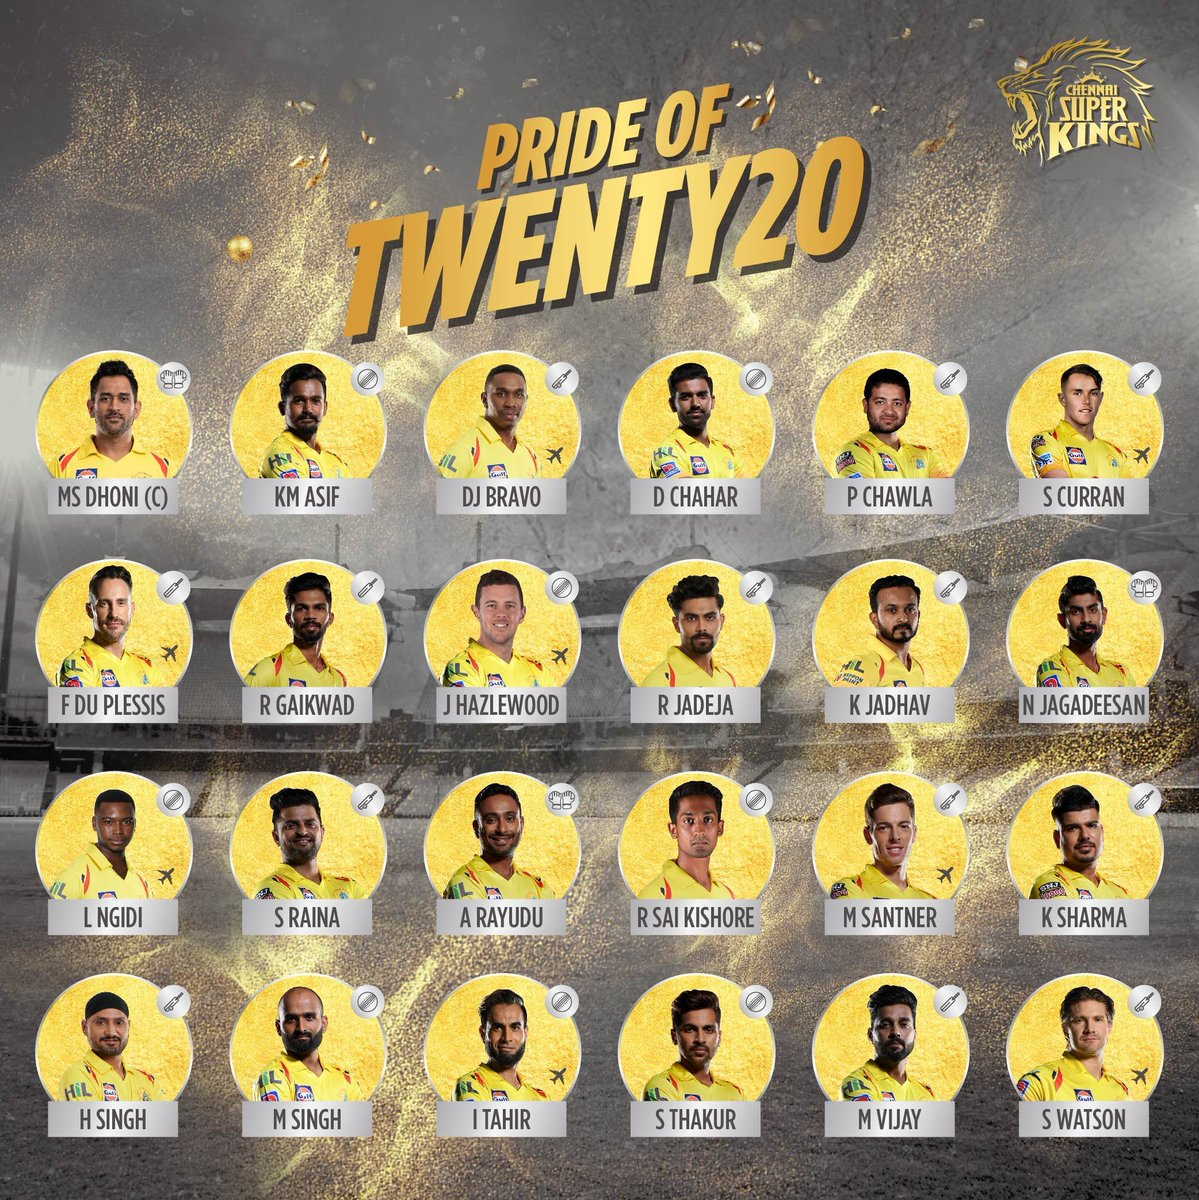 Now we are truly 24/7 #yellove! #PrideOfT20 #WhistlePodu #SuperFam 🦁💛